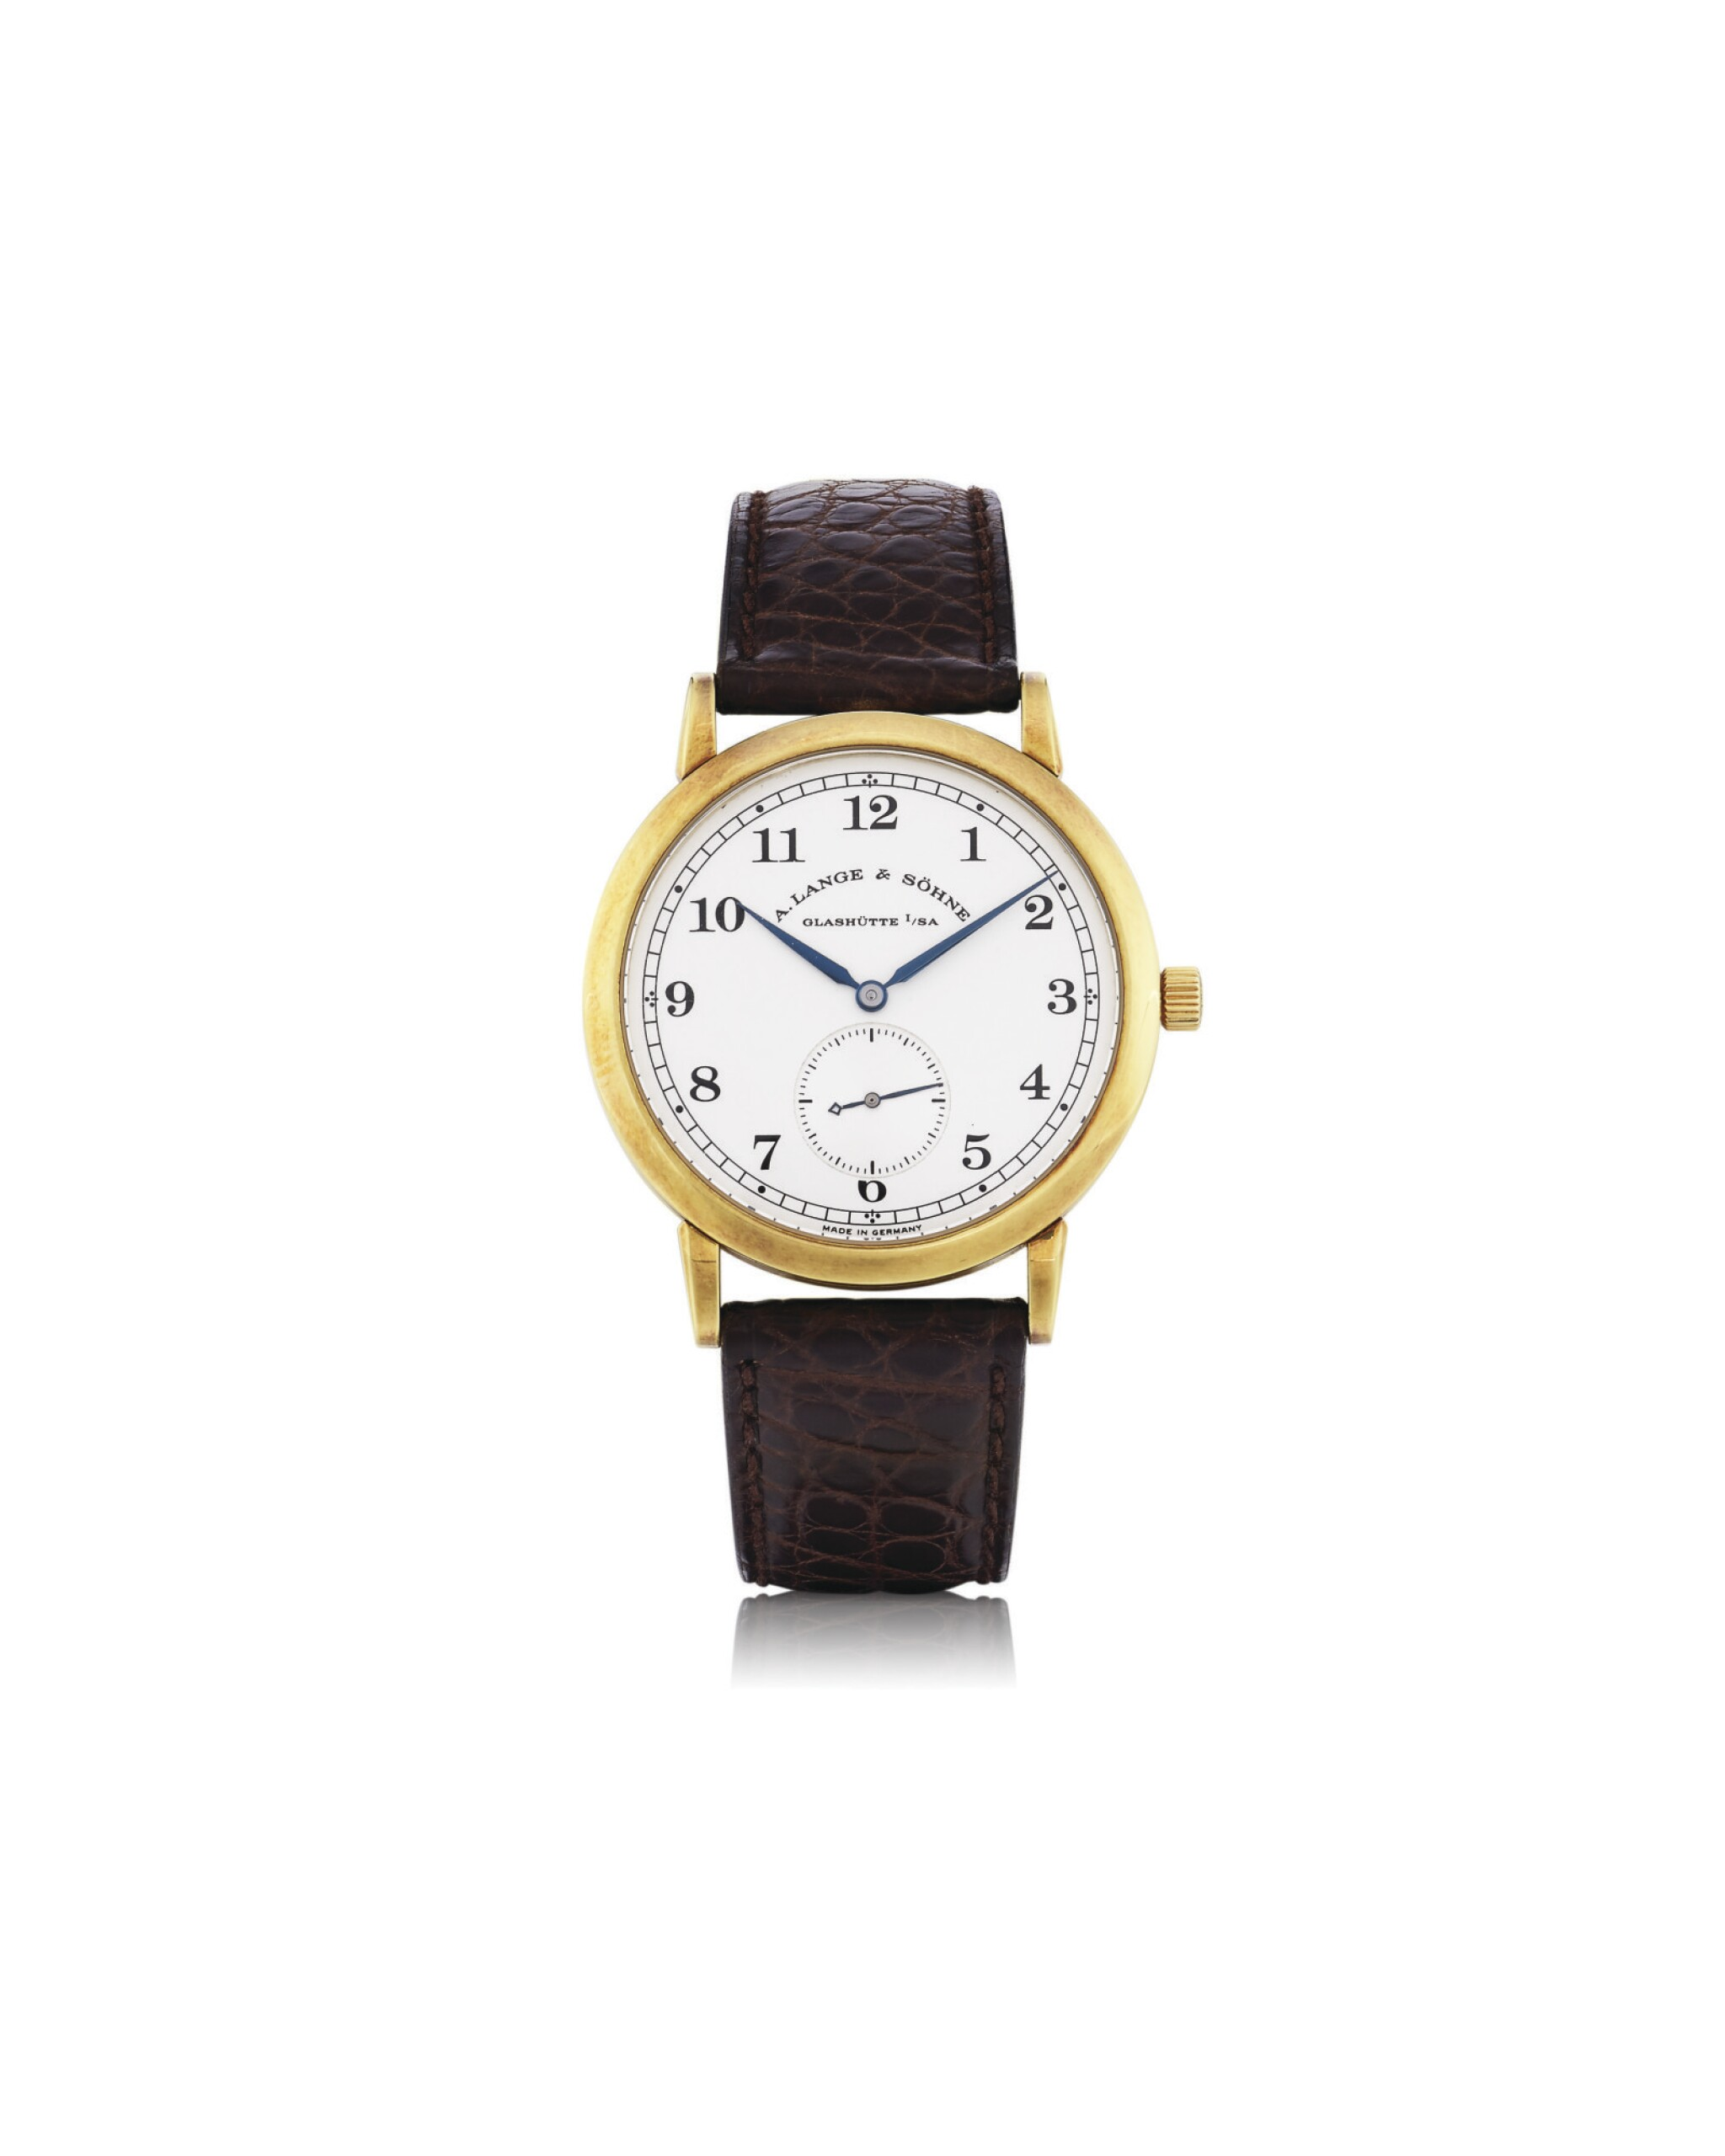 View full screen - View 1 of Lot 15. A. LANGE & SÖHNE | 1815, REF 206021 YELLOW GOLD WRISTWATCH CIRCA 1997.